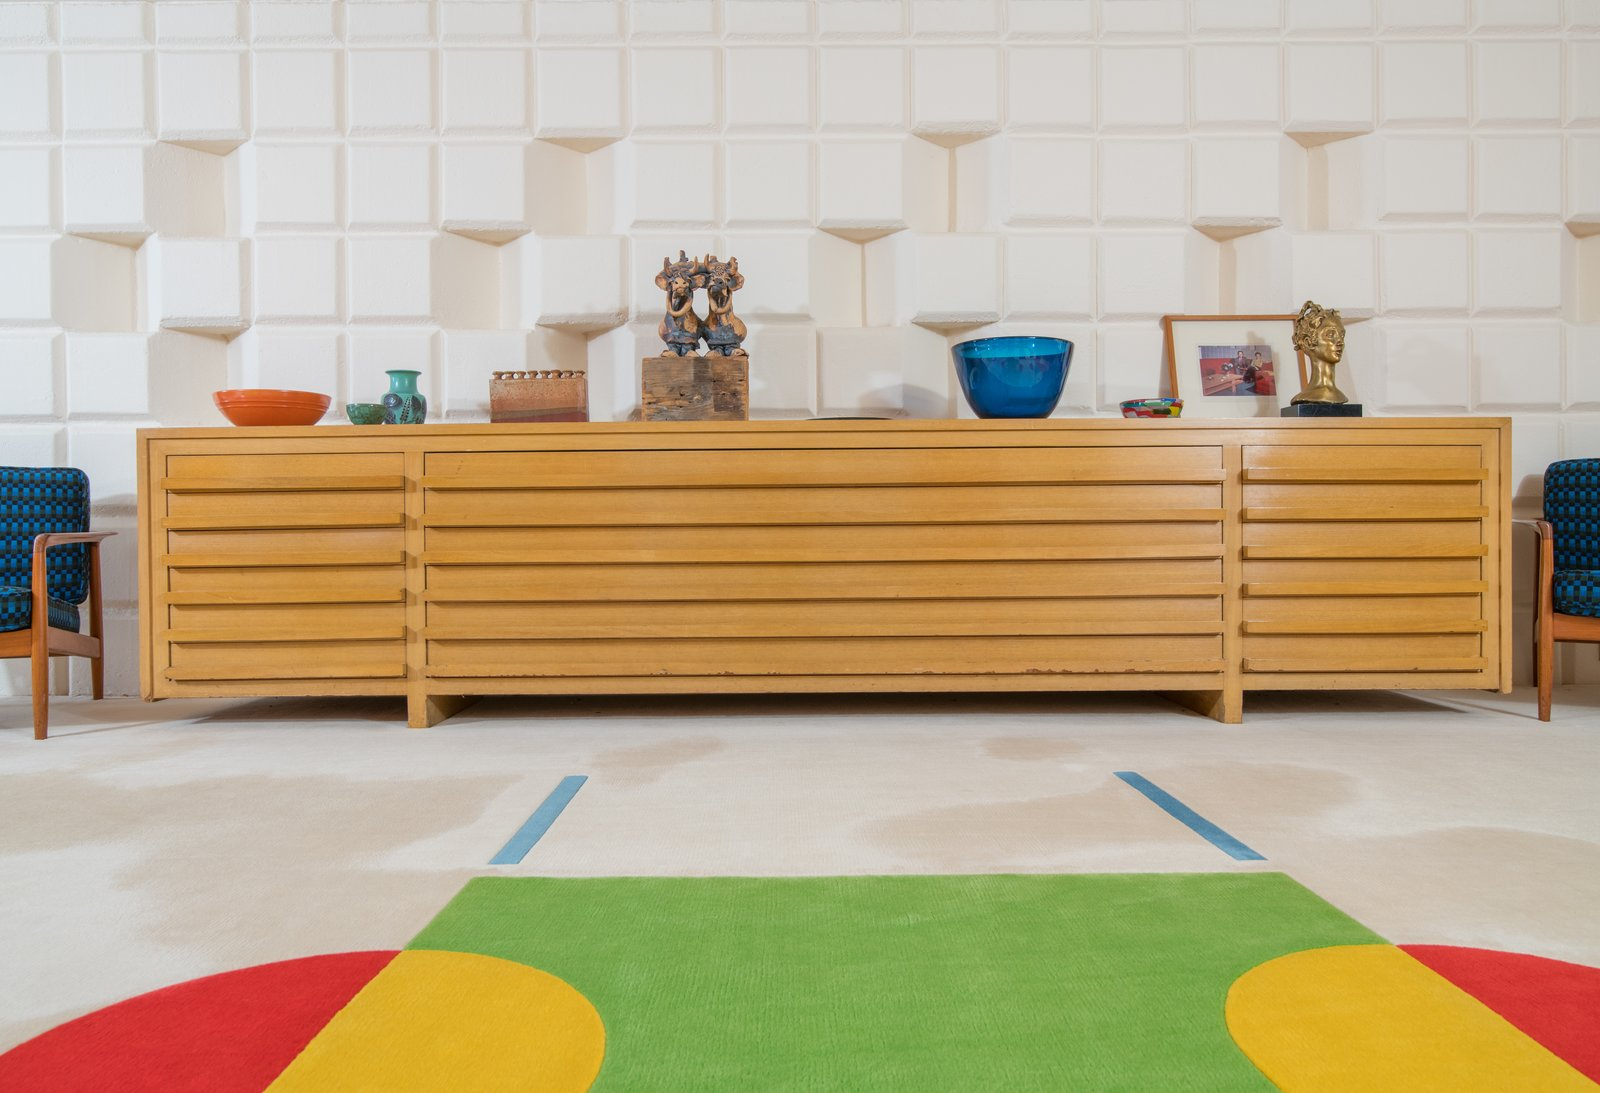 Dow designed the long buffet table in the game room, and had it manufactured by the furniture company Herman Miller.